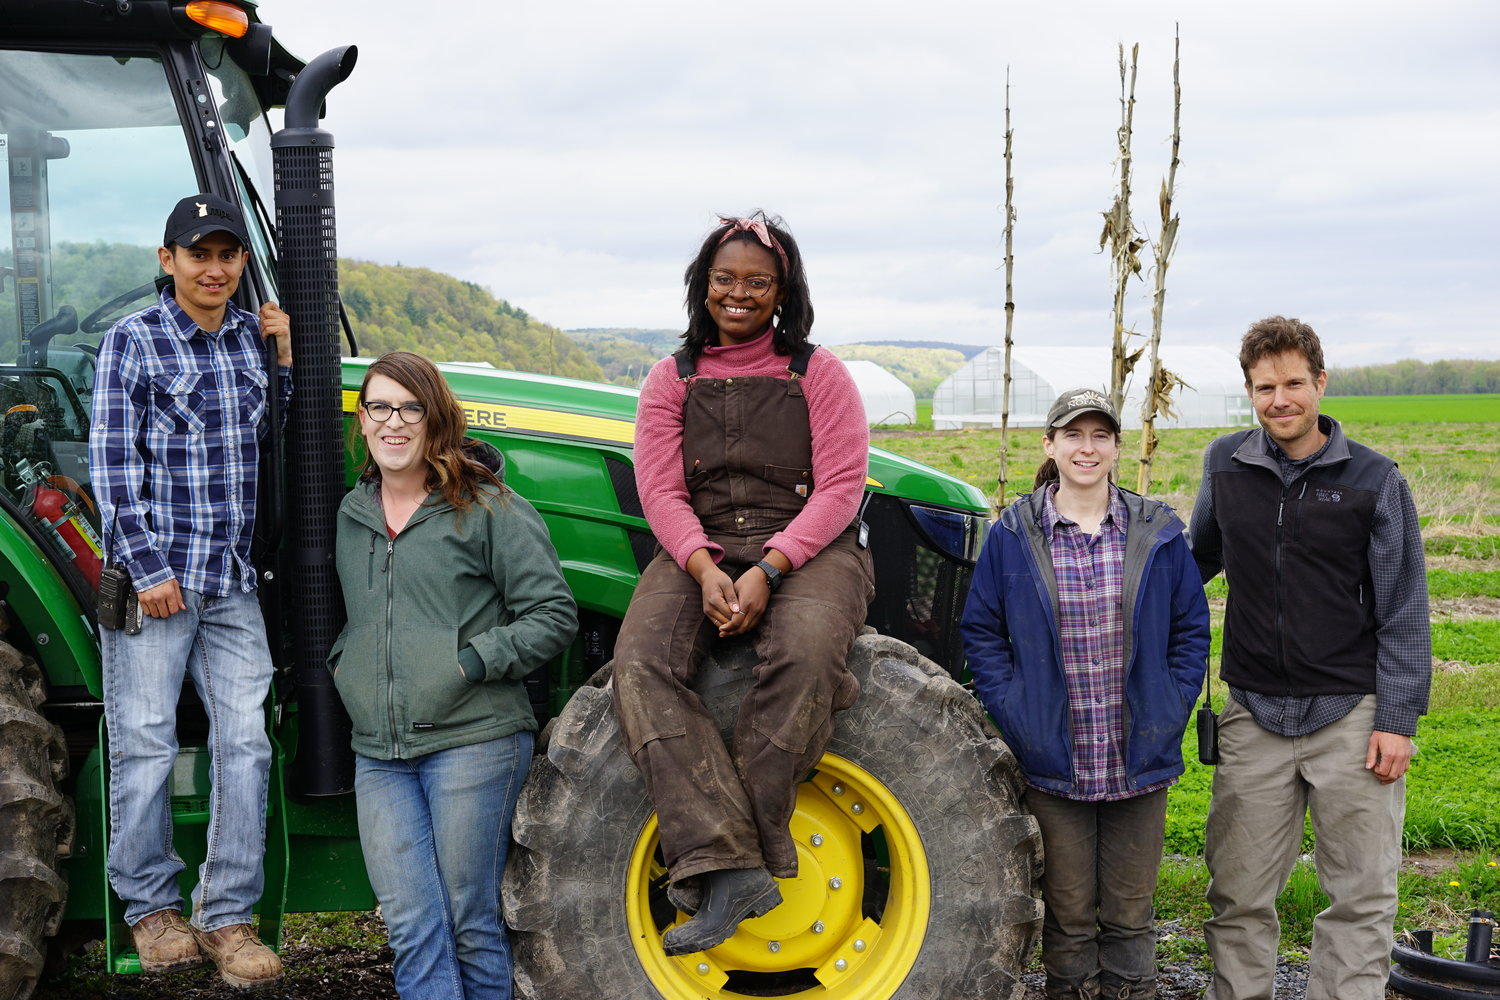 Farm Hub's current farmer trainees Jesus Gonzalez Jr., Jayne Henson, Nailah Marie Ellis, Jess Clancy, and Andrew Casner are members of the Hudson Valley Farm Hub's ProFarmer Program.